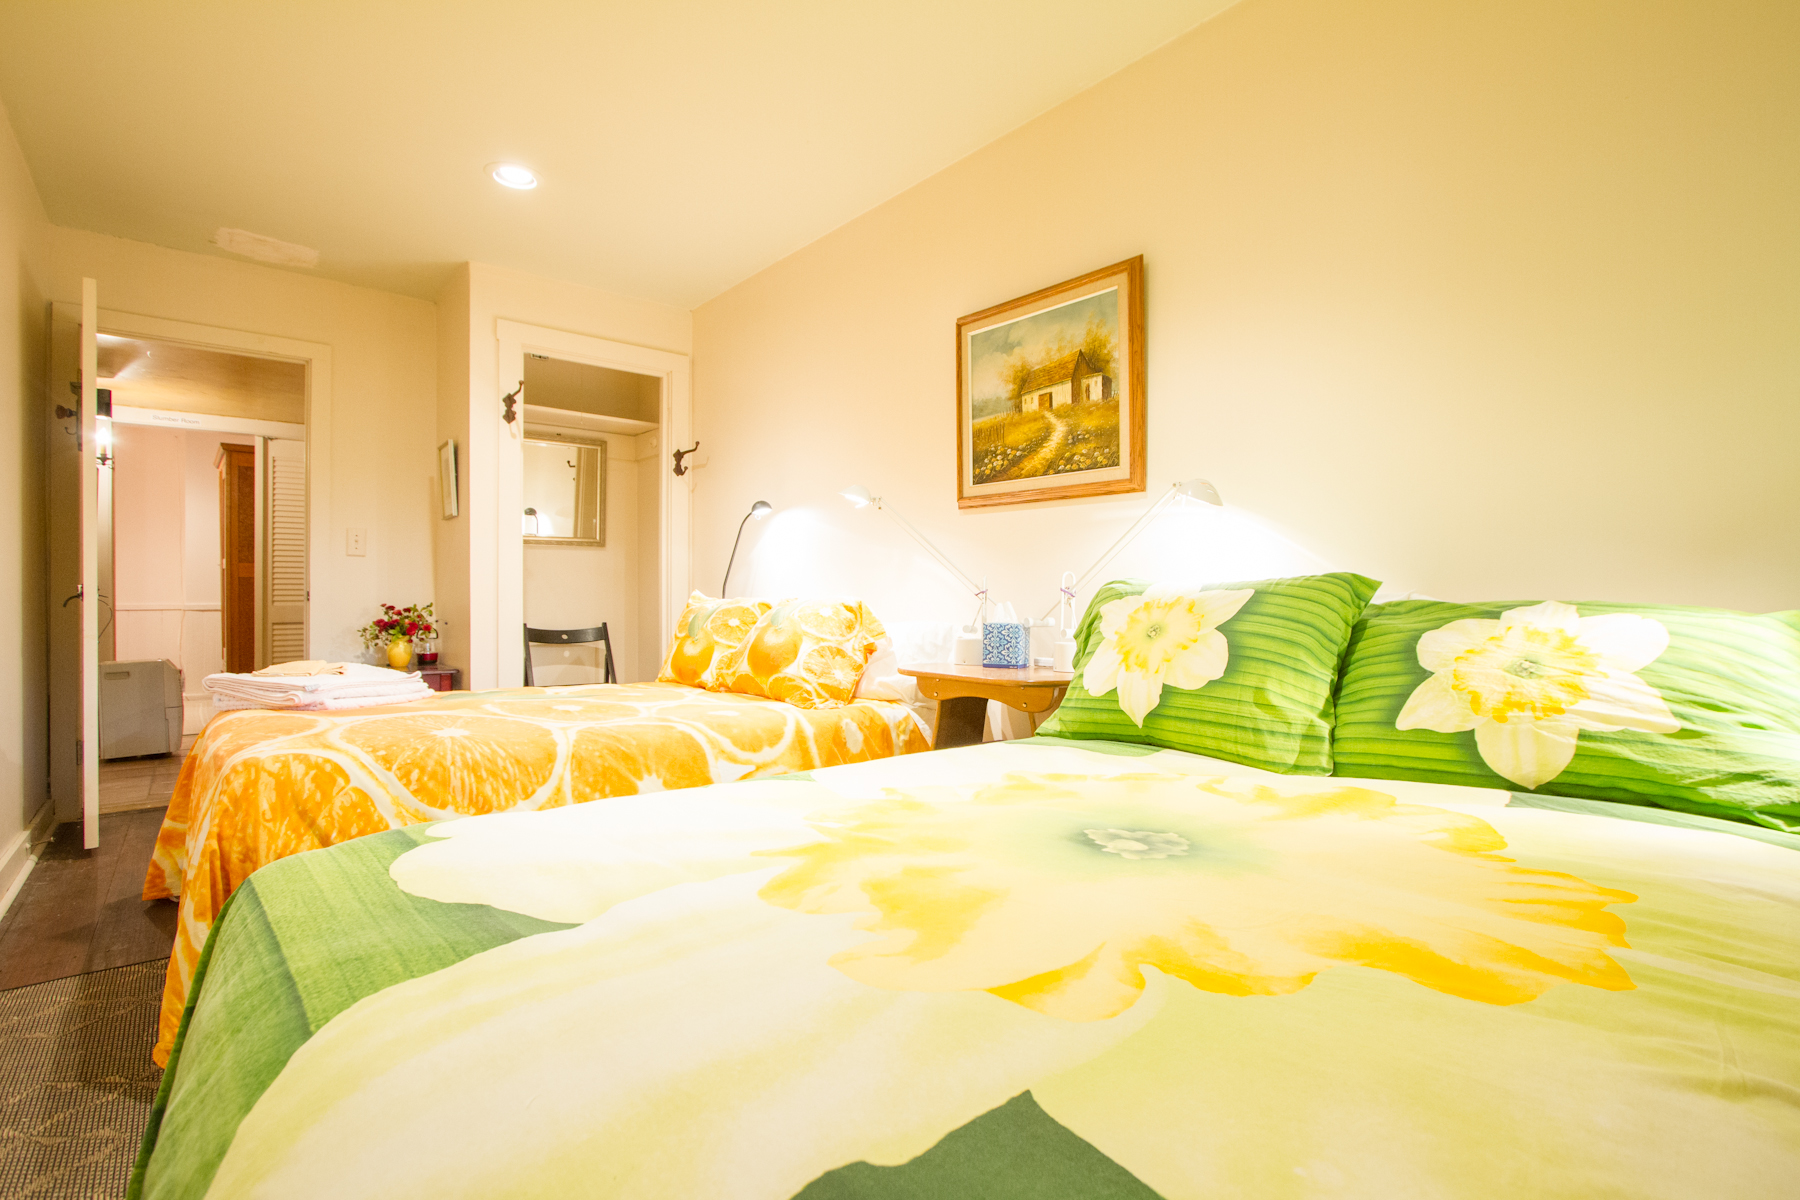 Warrior II Room (Book Private or Share) - 2 Full Bed